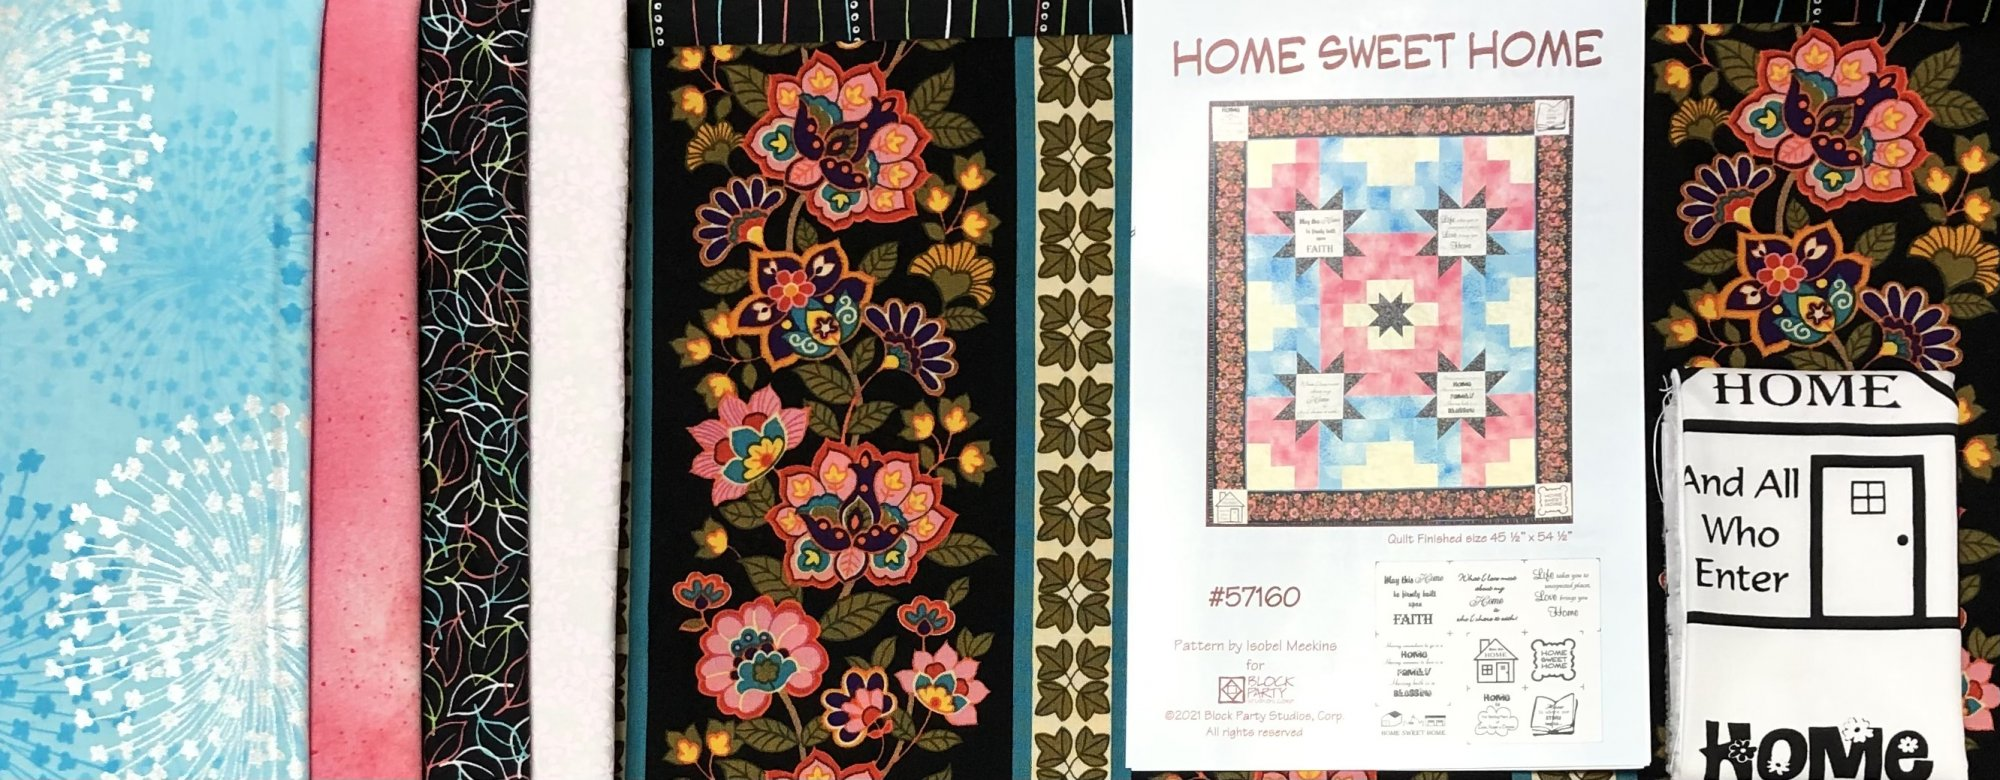 Home Sweet Home Quilt Kit